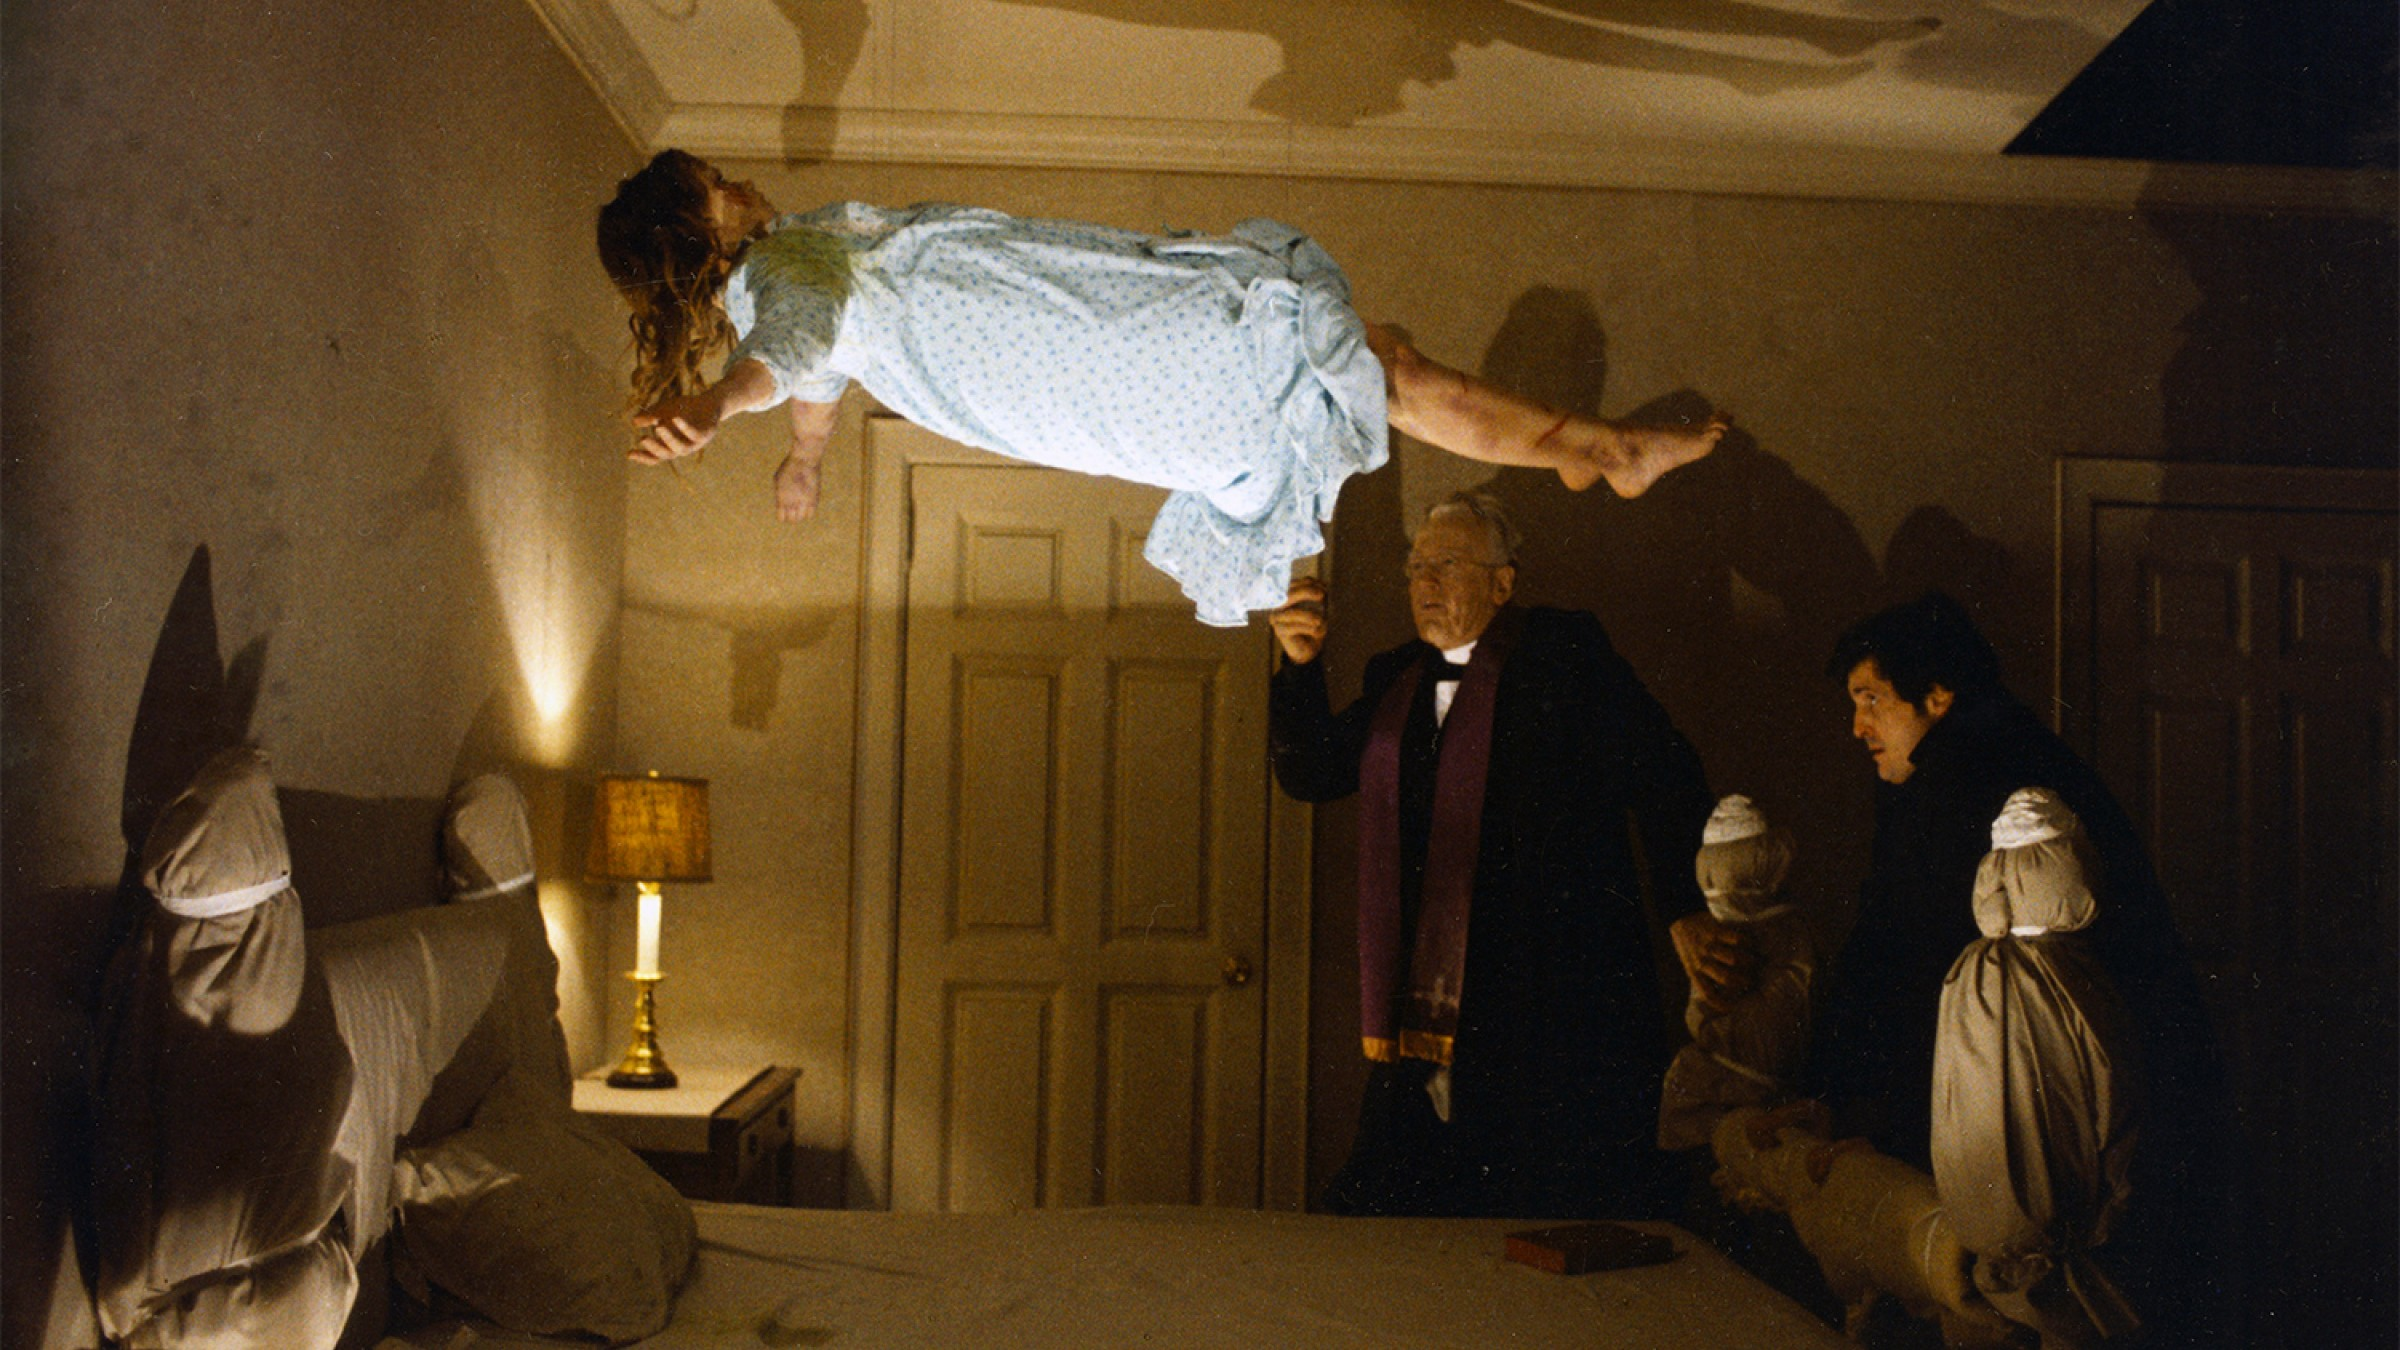 the spirit of possession as described in william blattys 1973 book the exorcist